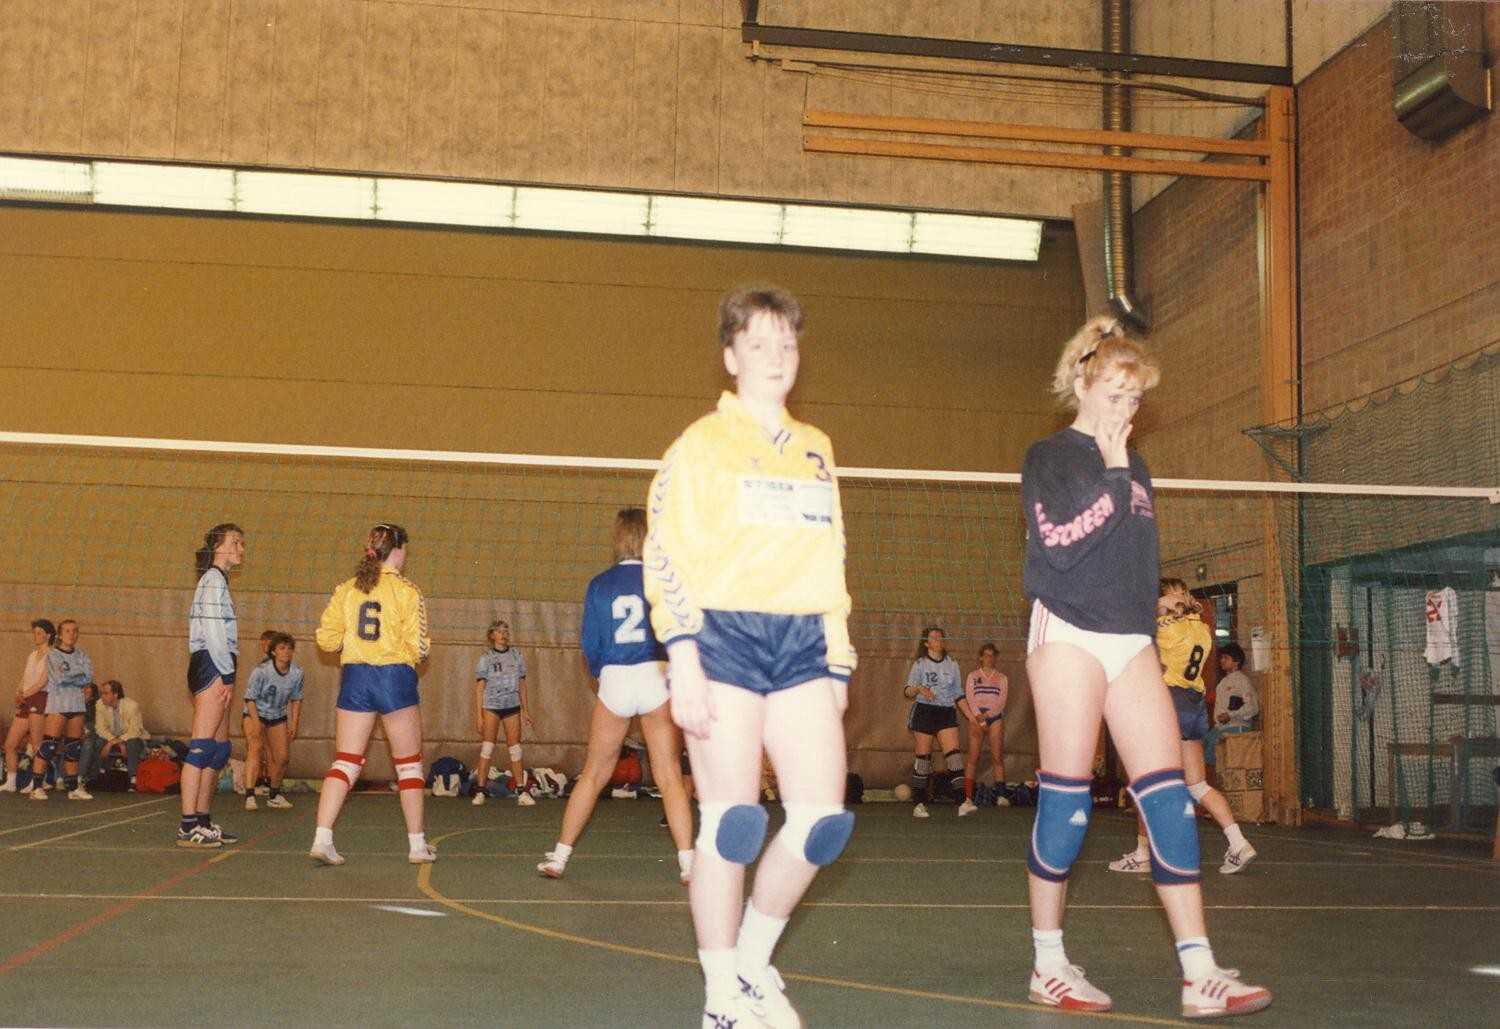 Scan12975 VOLLEY I SVERIGE 07-05-88